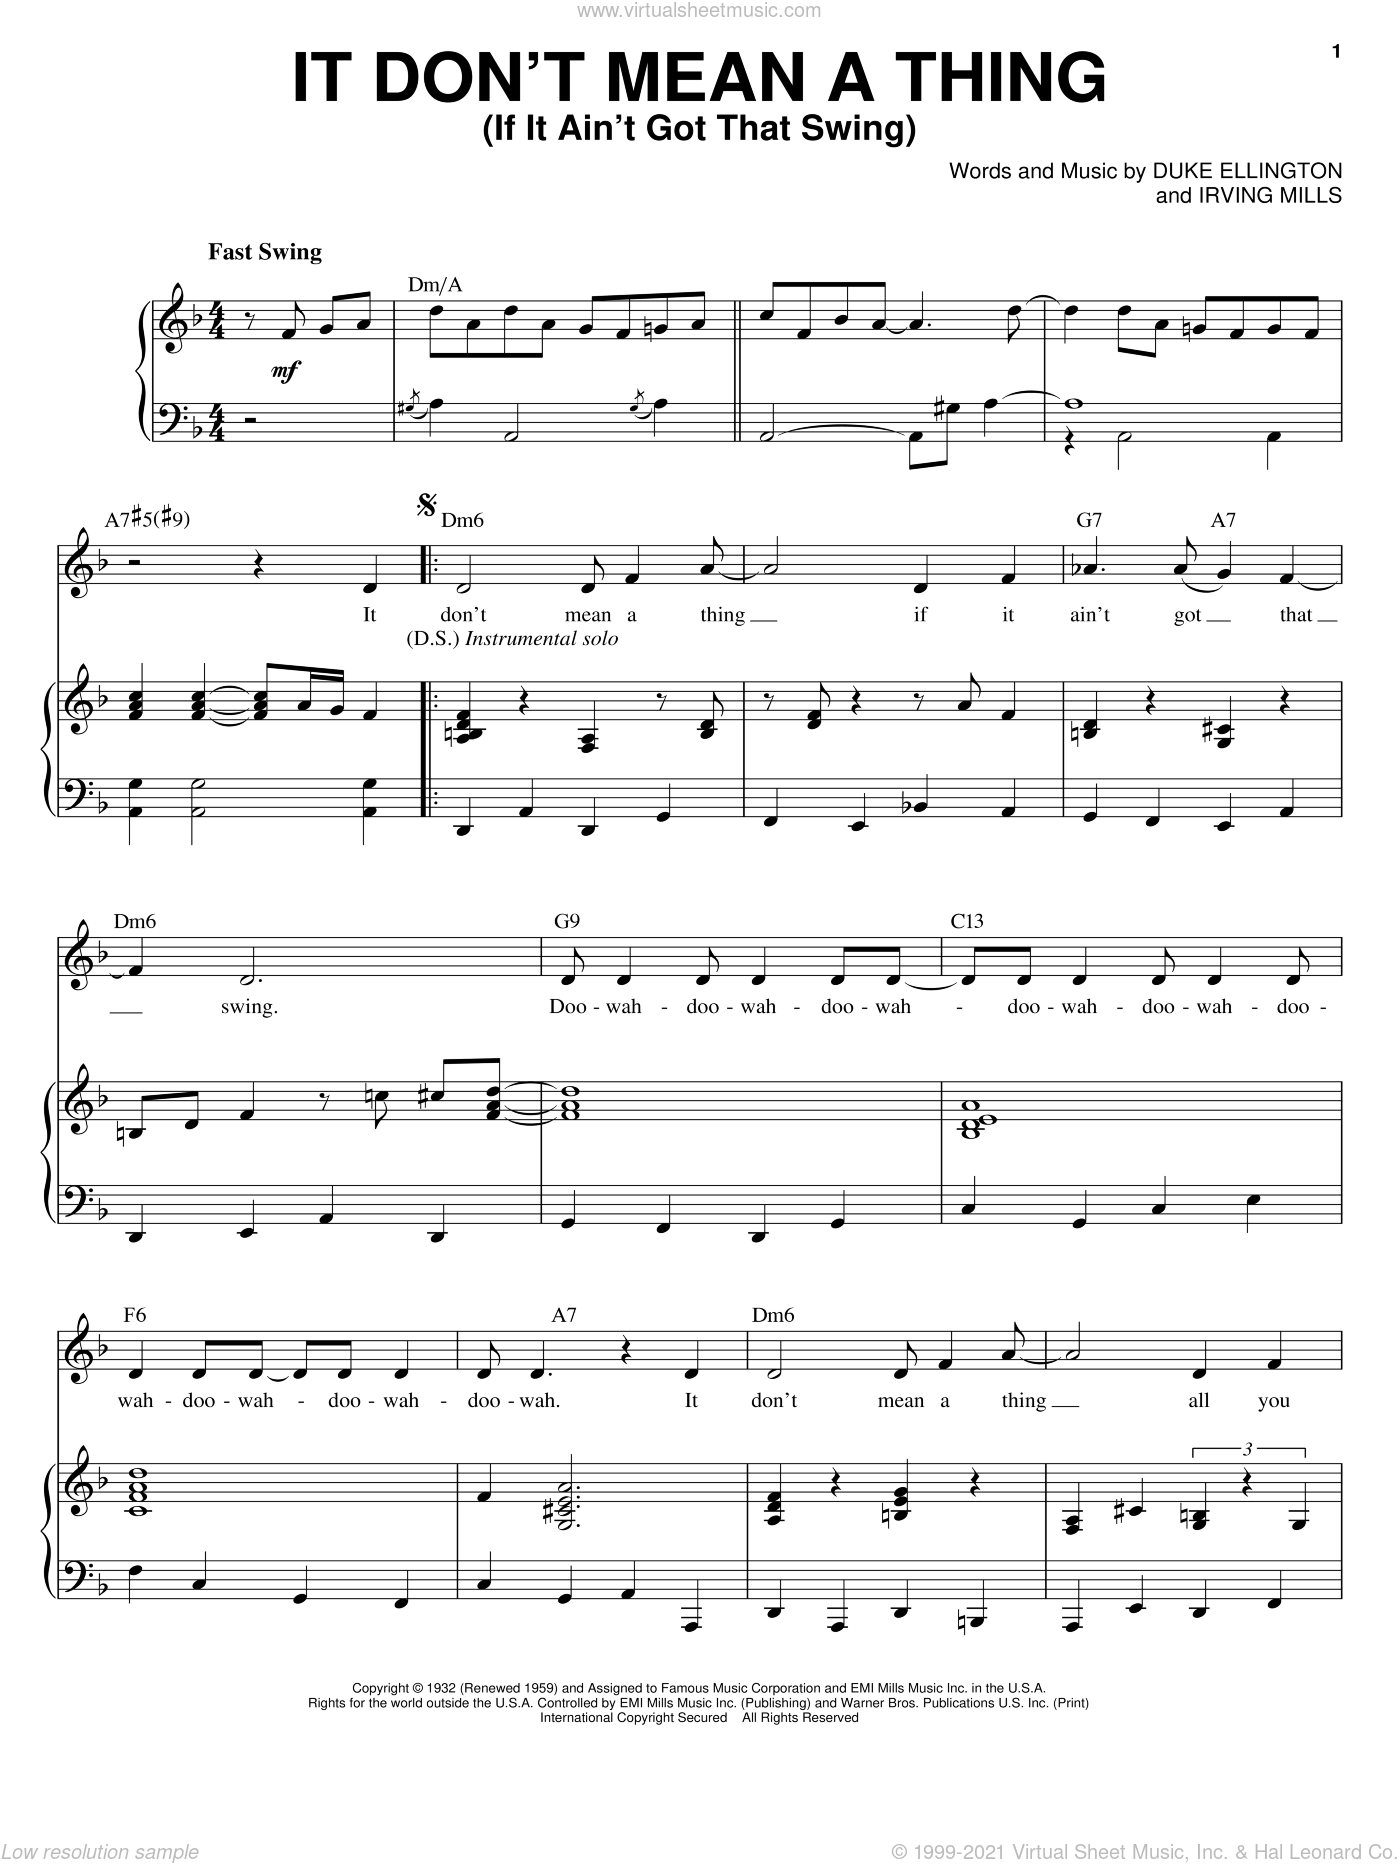 It Don't Mean A Thing (If It Ain't Got That Swing) sheet music for voice and piano by Ella Fitzgerald, Chet Atkins, Ivie Anderson, Lionel Hampton, Louis Armstrong, Nina Simone, The Mills Brothers, Duke Ellington and Irving Mills, intermediate skill level